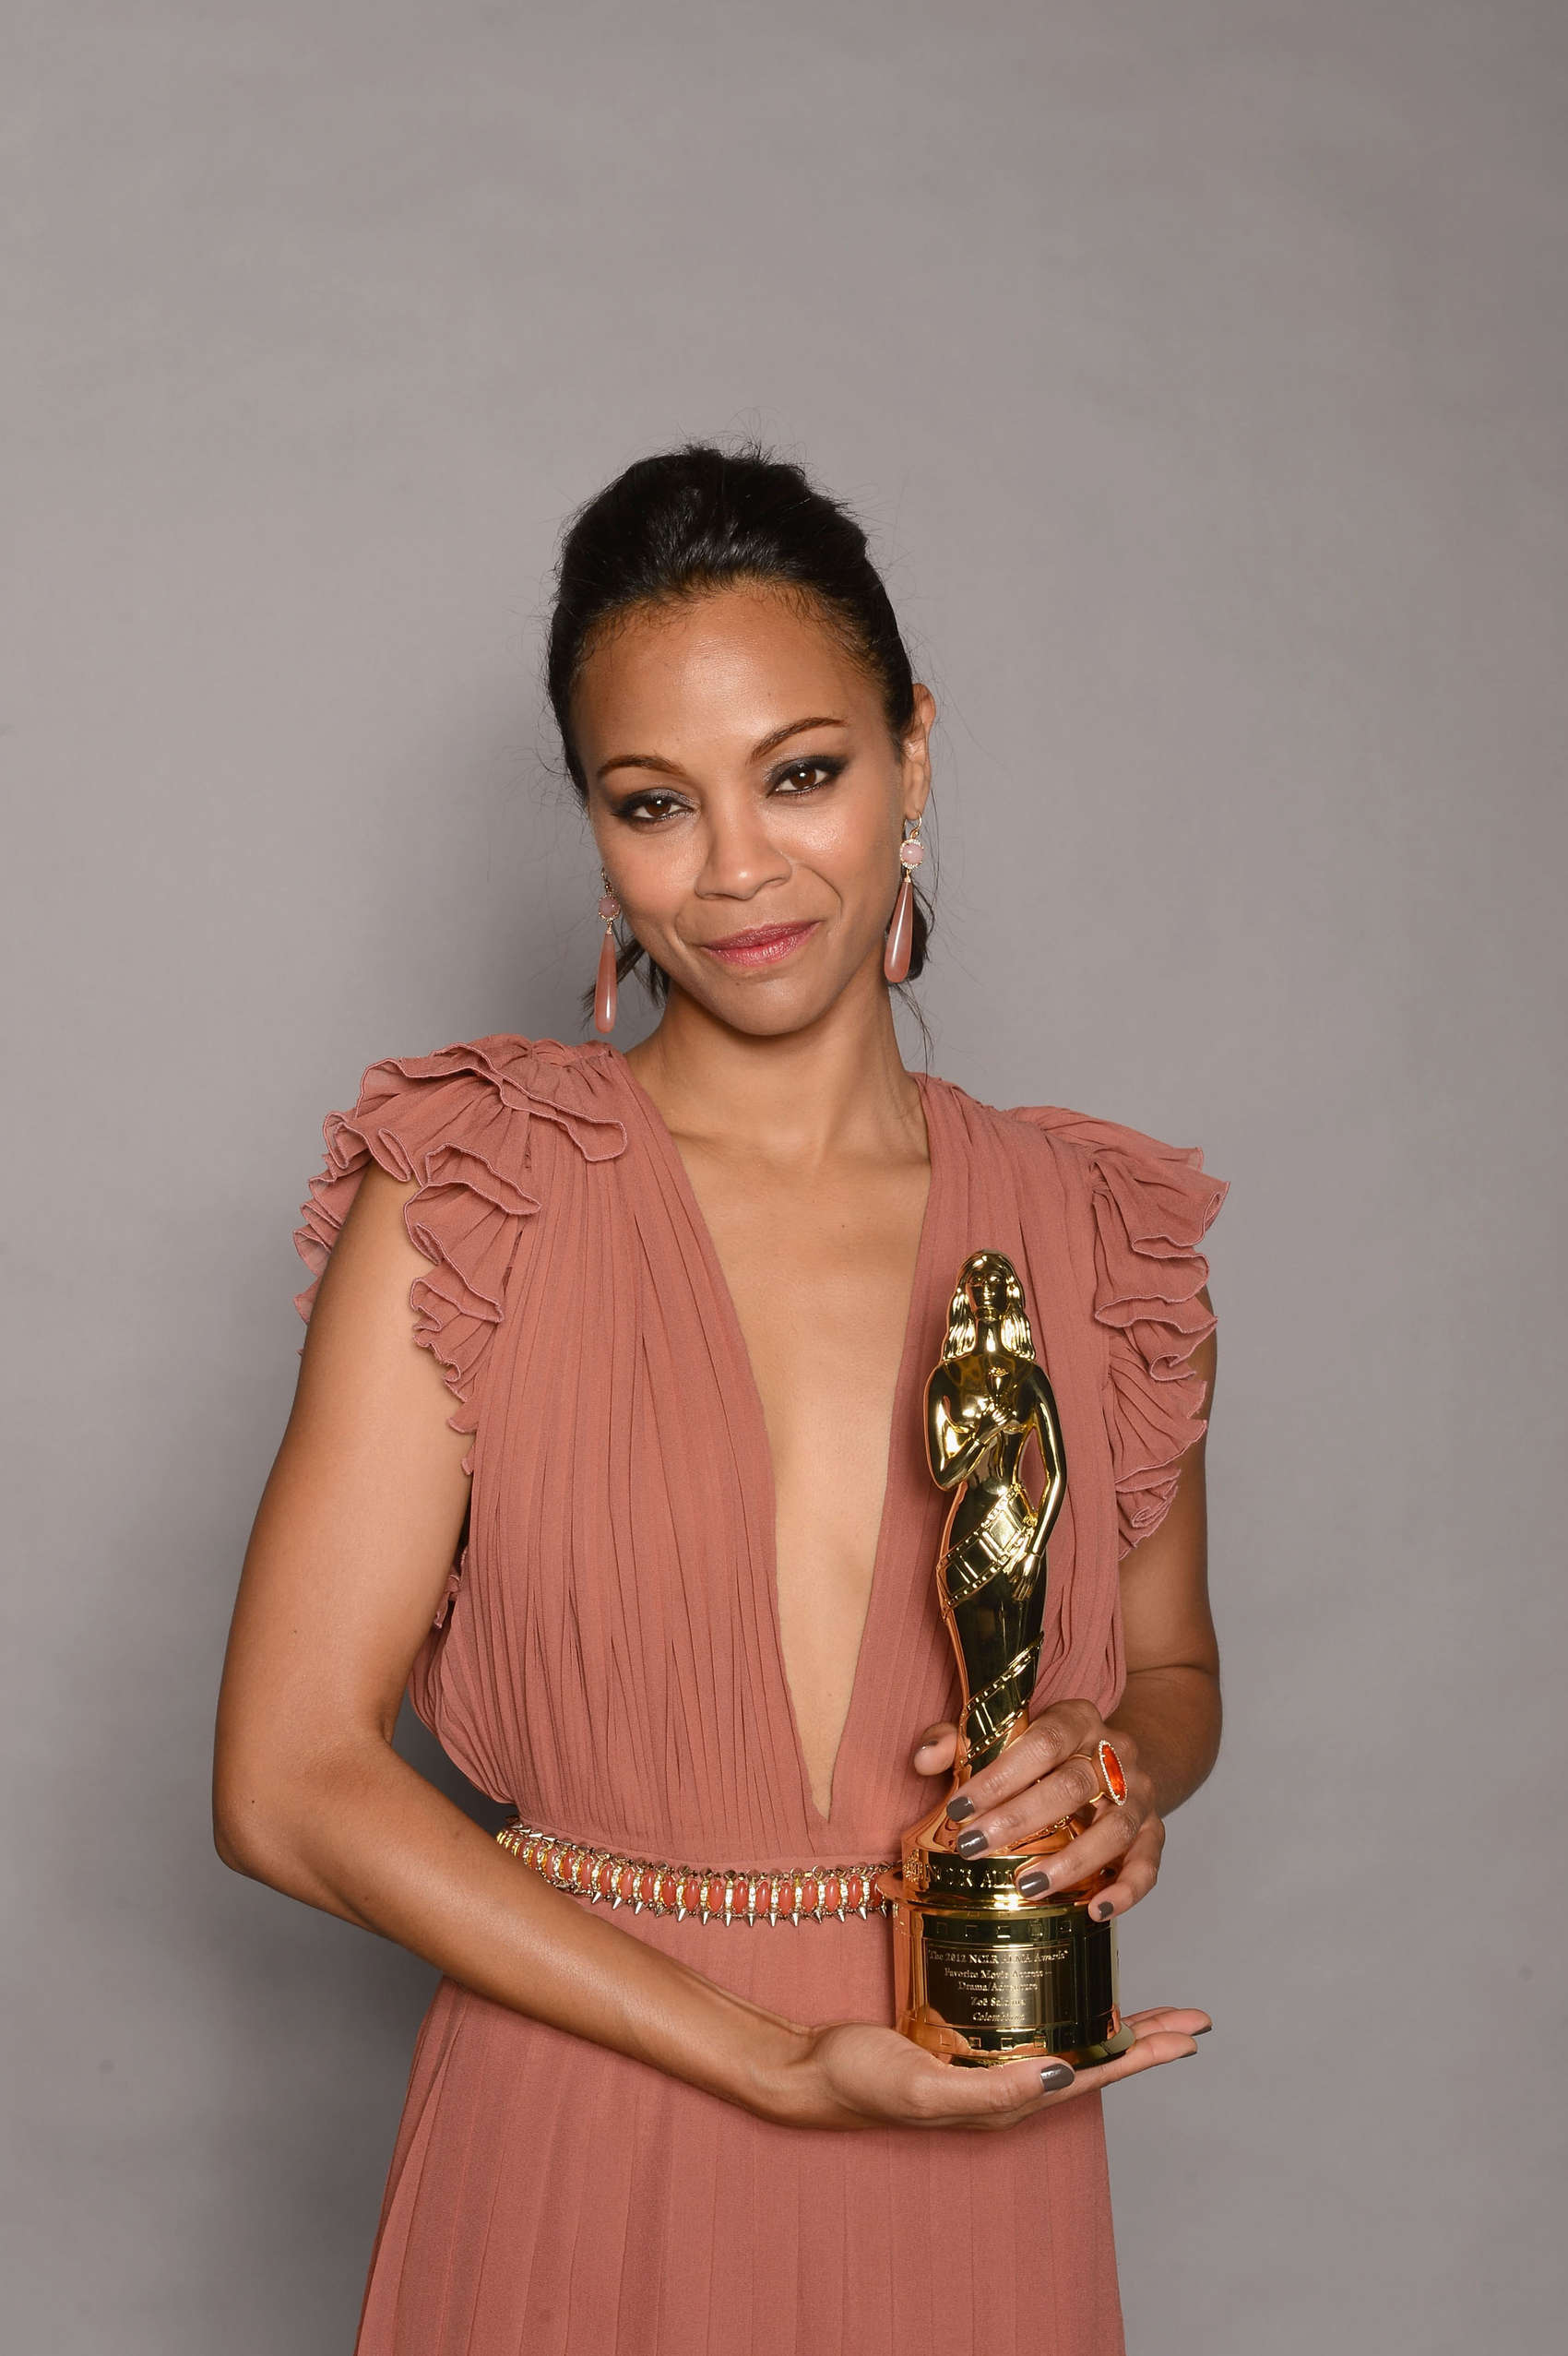 Cleavage Zoe Saldana nude photos 2019